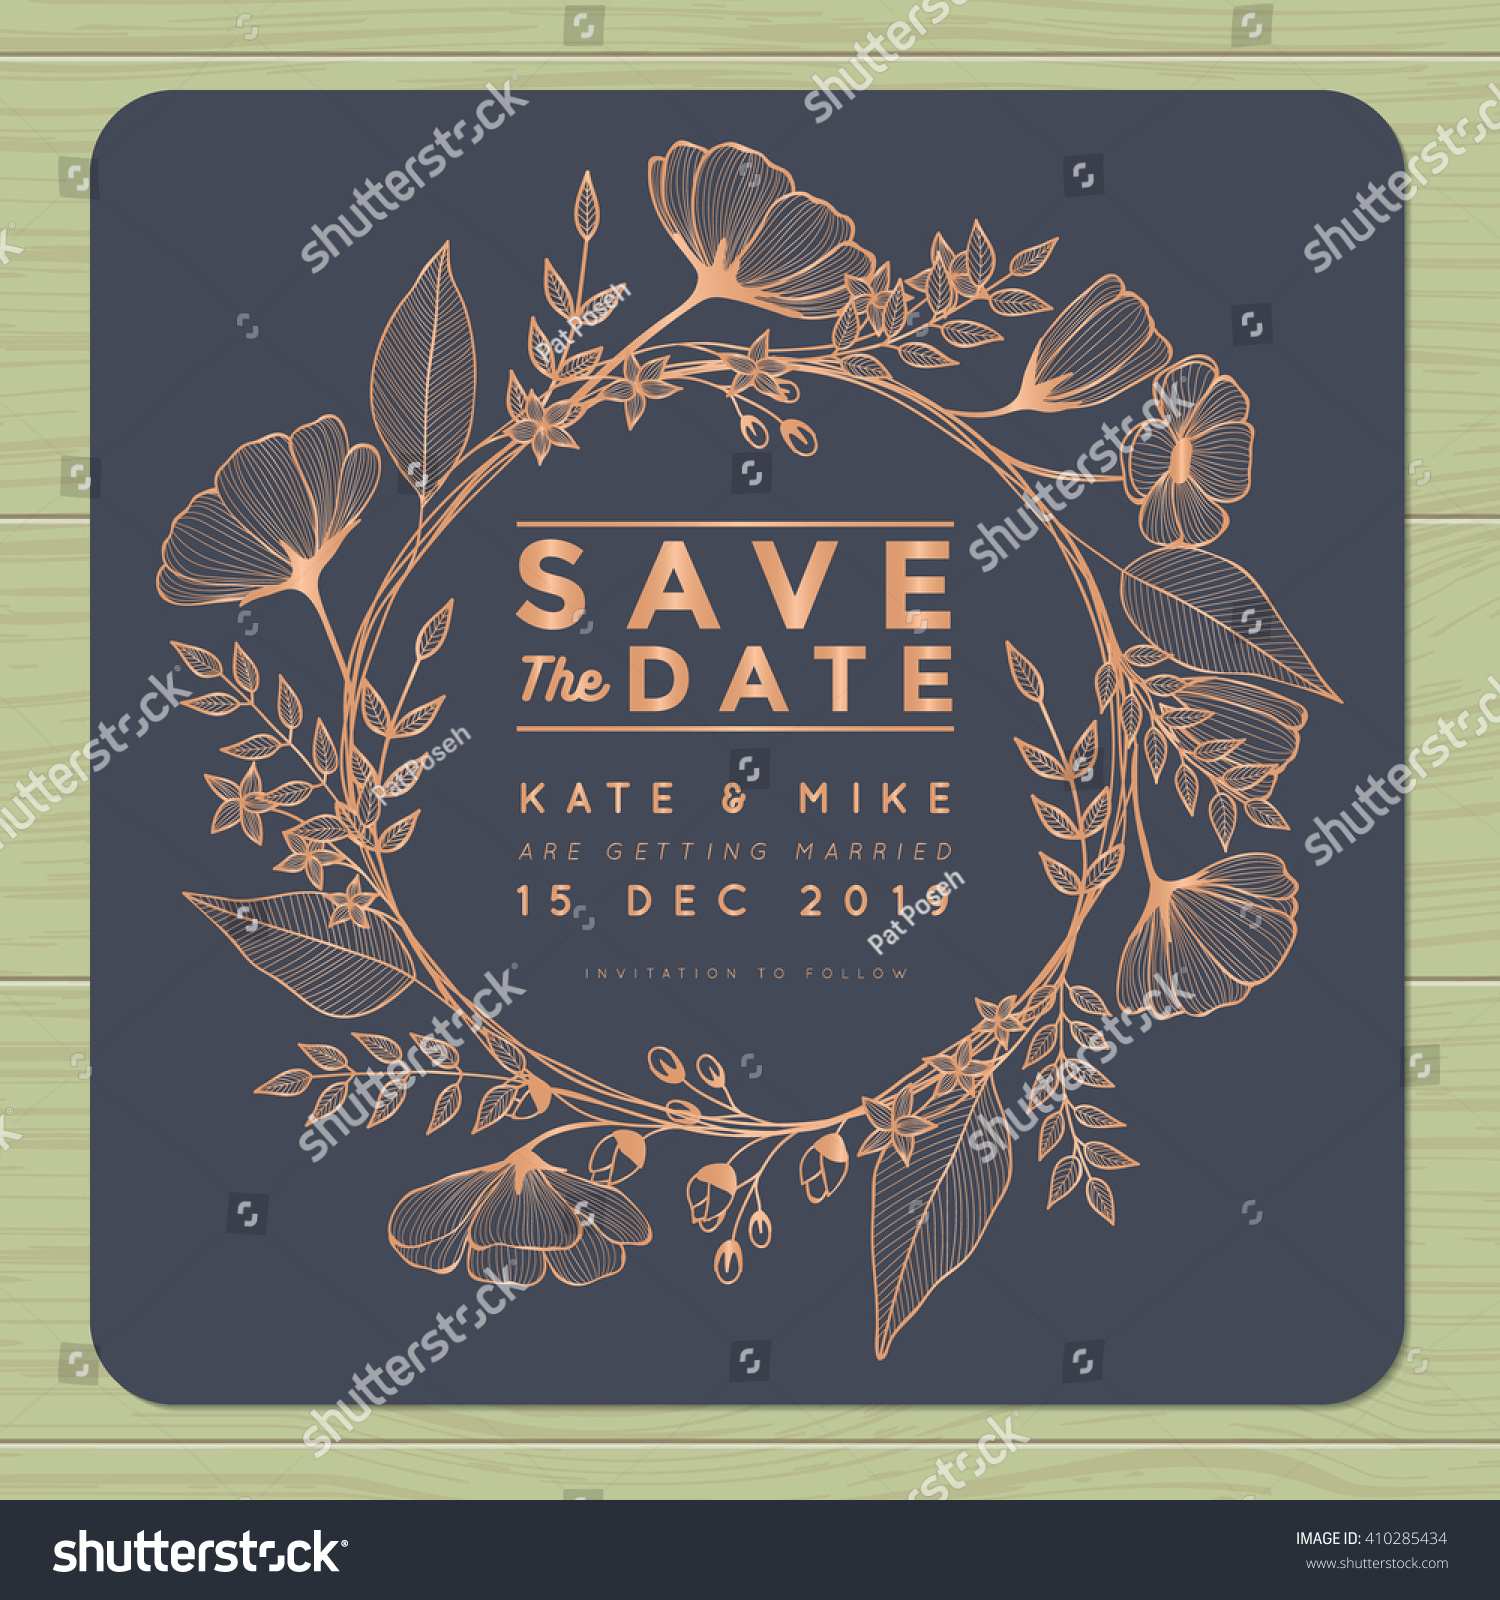 Save the date, wedding invitation card with wreath flower template. Flower floral background. Vector illustration. #410285434